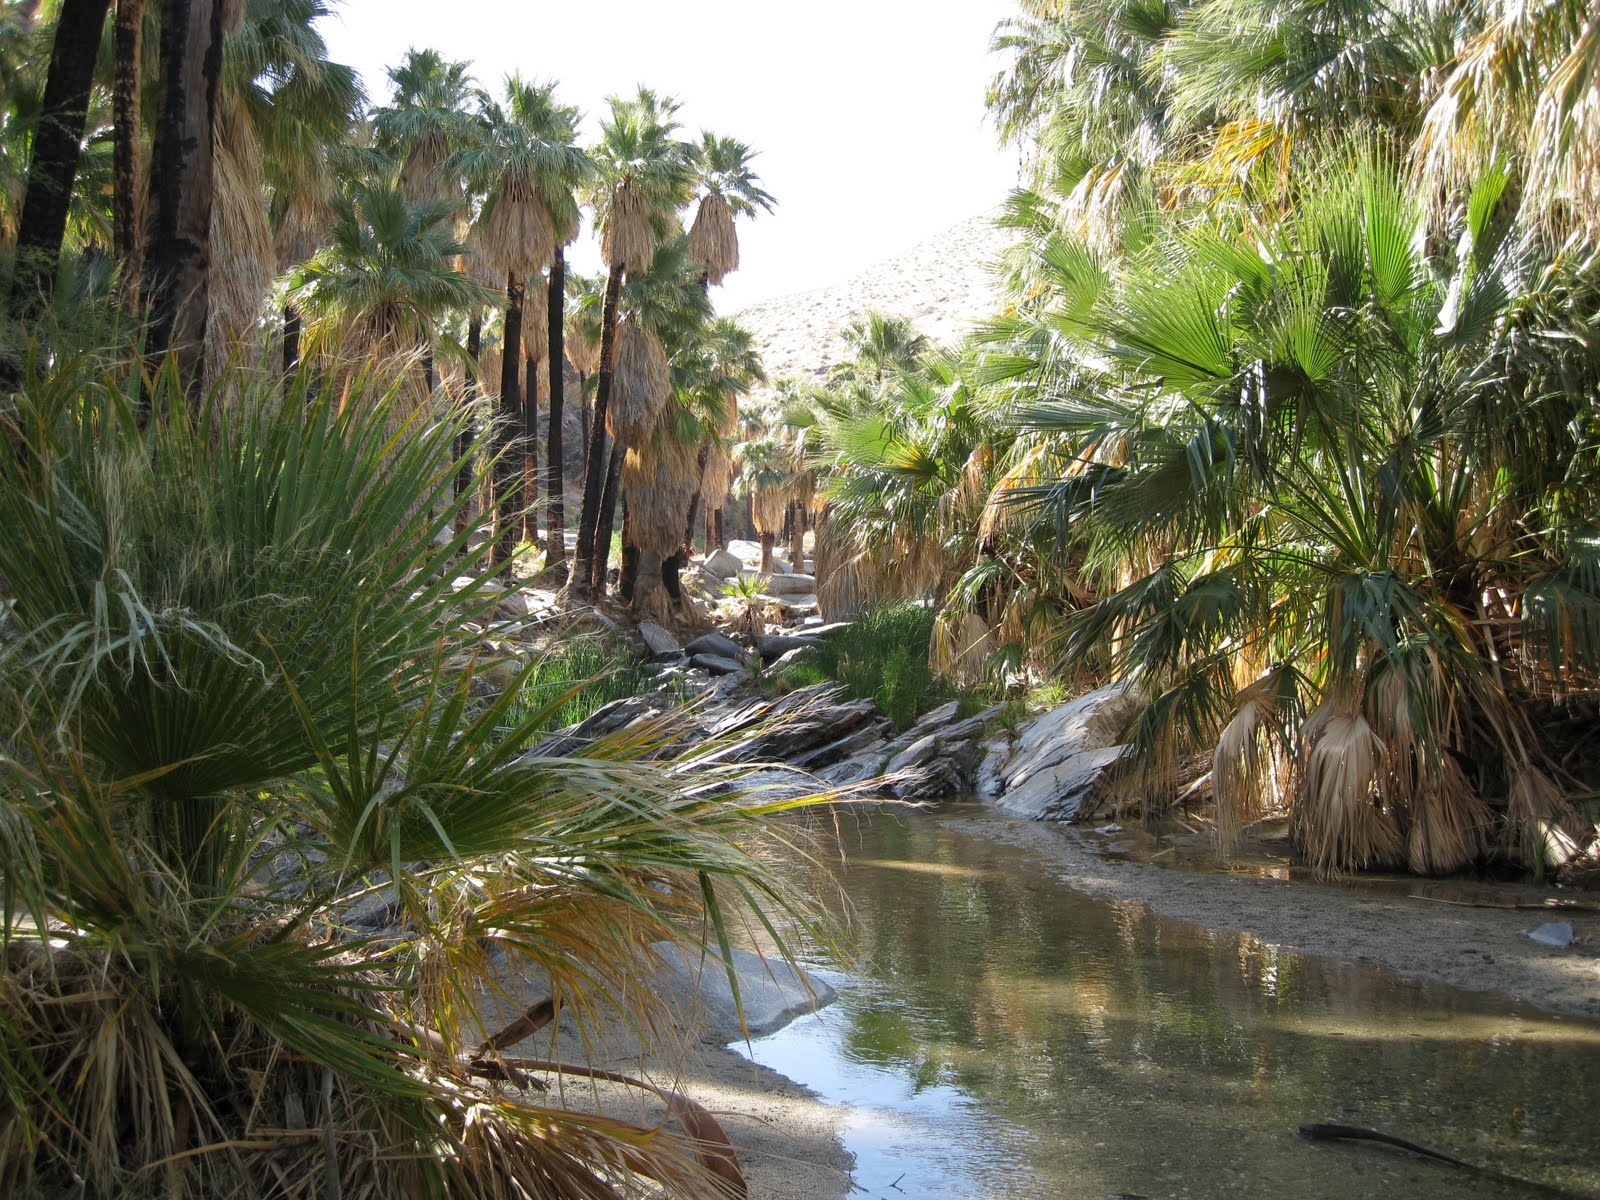 Les Indian Canyons de Palm Springs